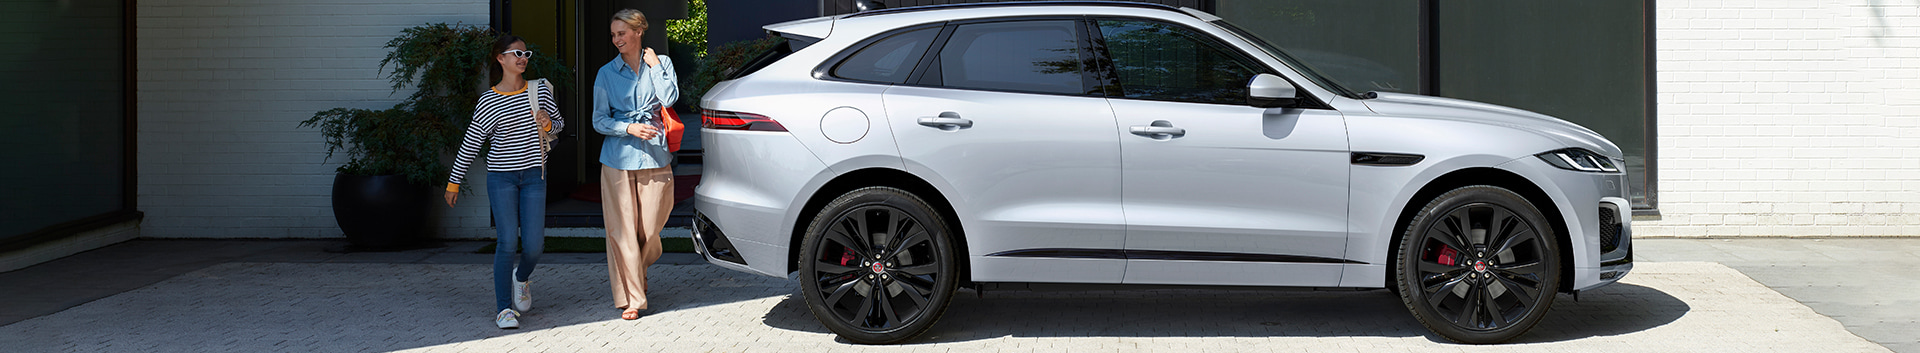 Side exterior view of the 2021 Jaguar F-Pace parked outside of a home